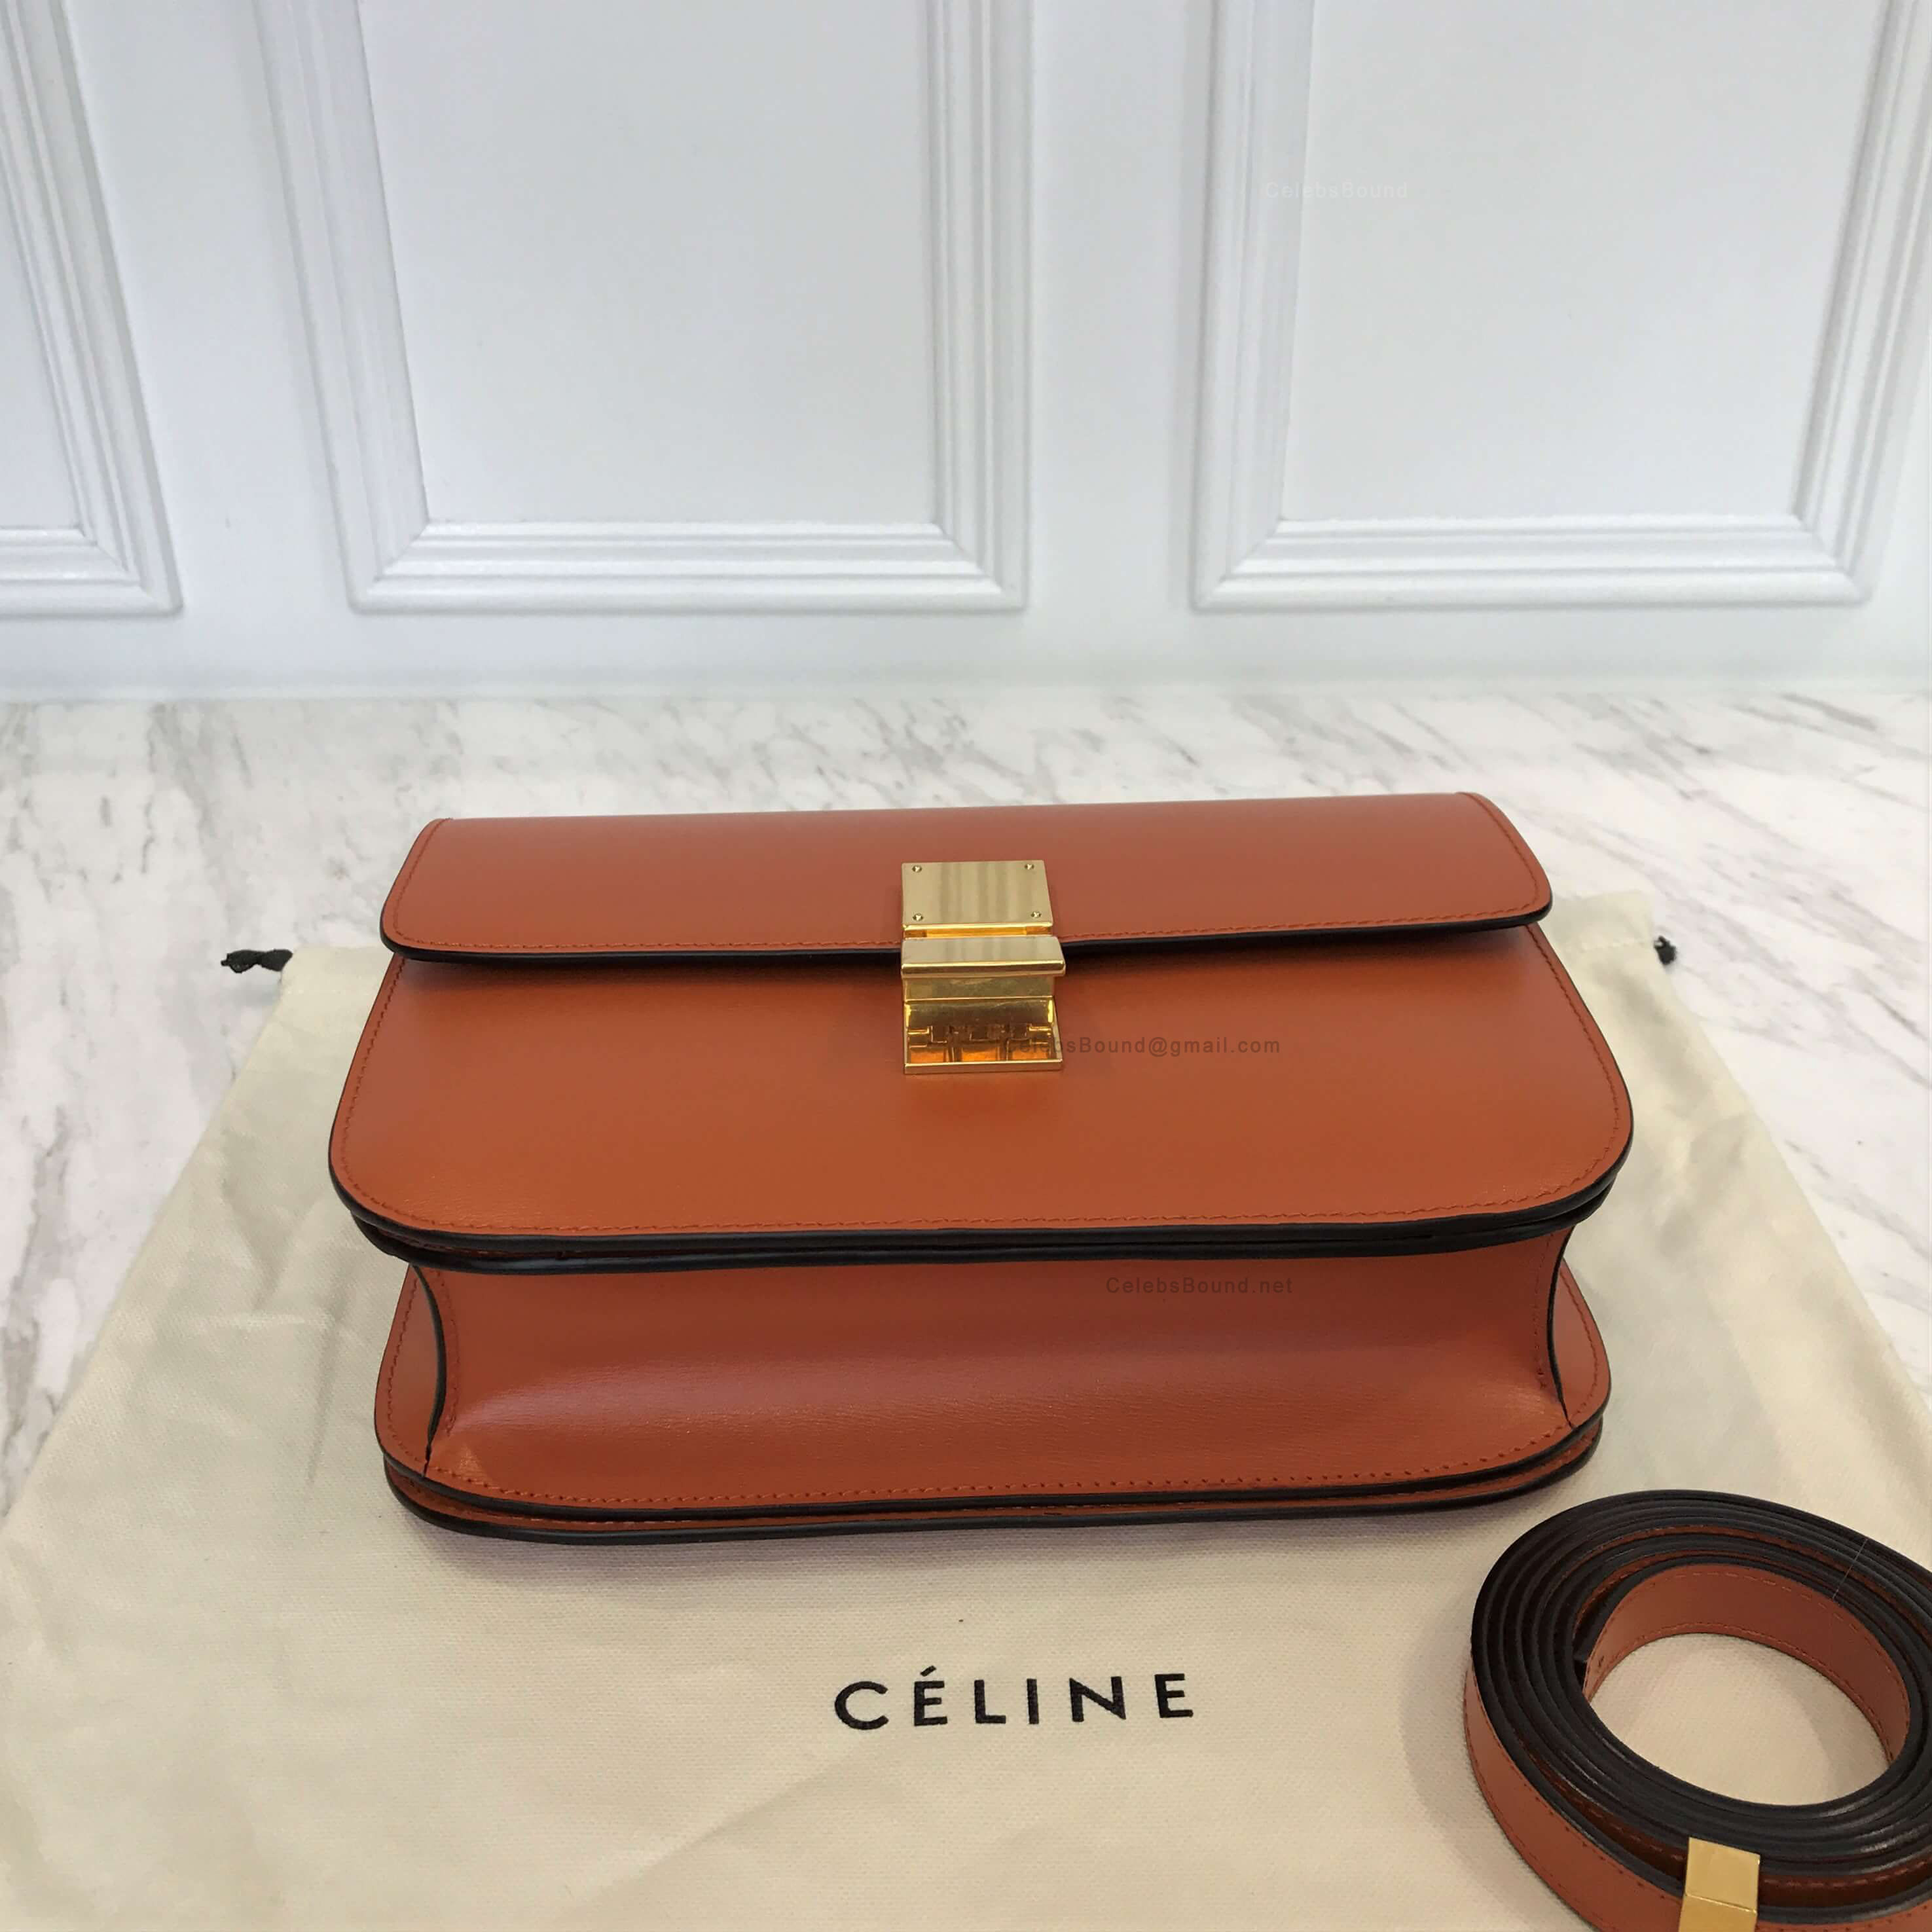 0f3558287722 ... Celine Classic Box Bag Medium in Tawny Liege Calfskin best authentic  b43c7 da465 . ...